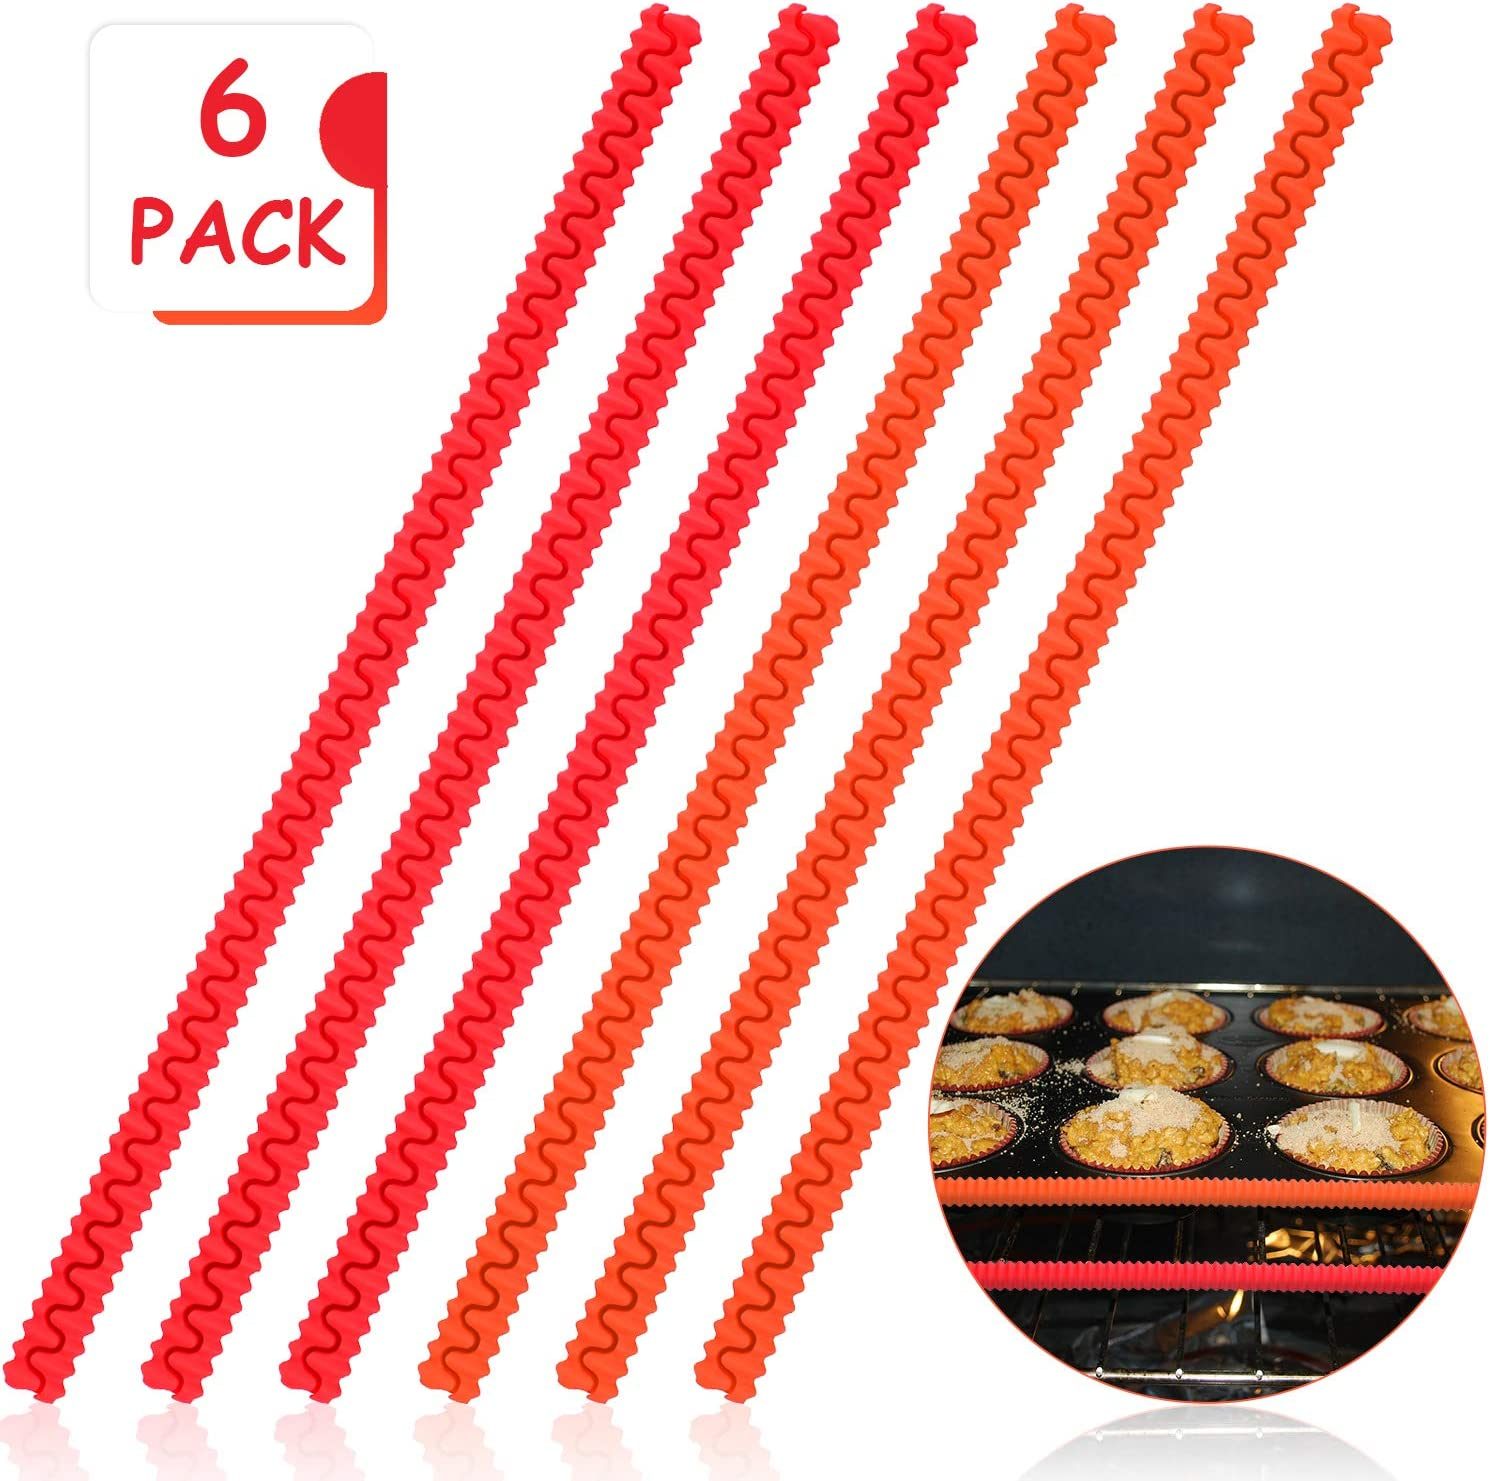 6 Pieces Oven Rack Shields Oven Edge Cover 14 Inch Long Heat Resistant Silicone Shield Oven Rack Edge Protectors, Protect Against Burns and Scars (Red and Orange)